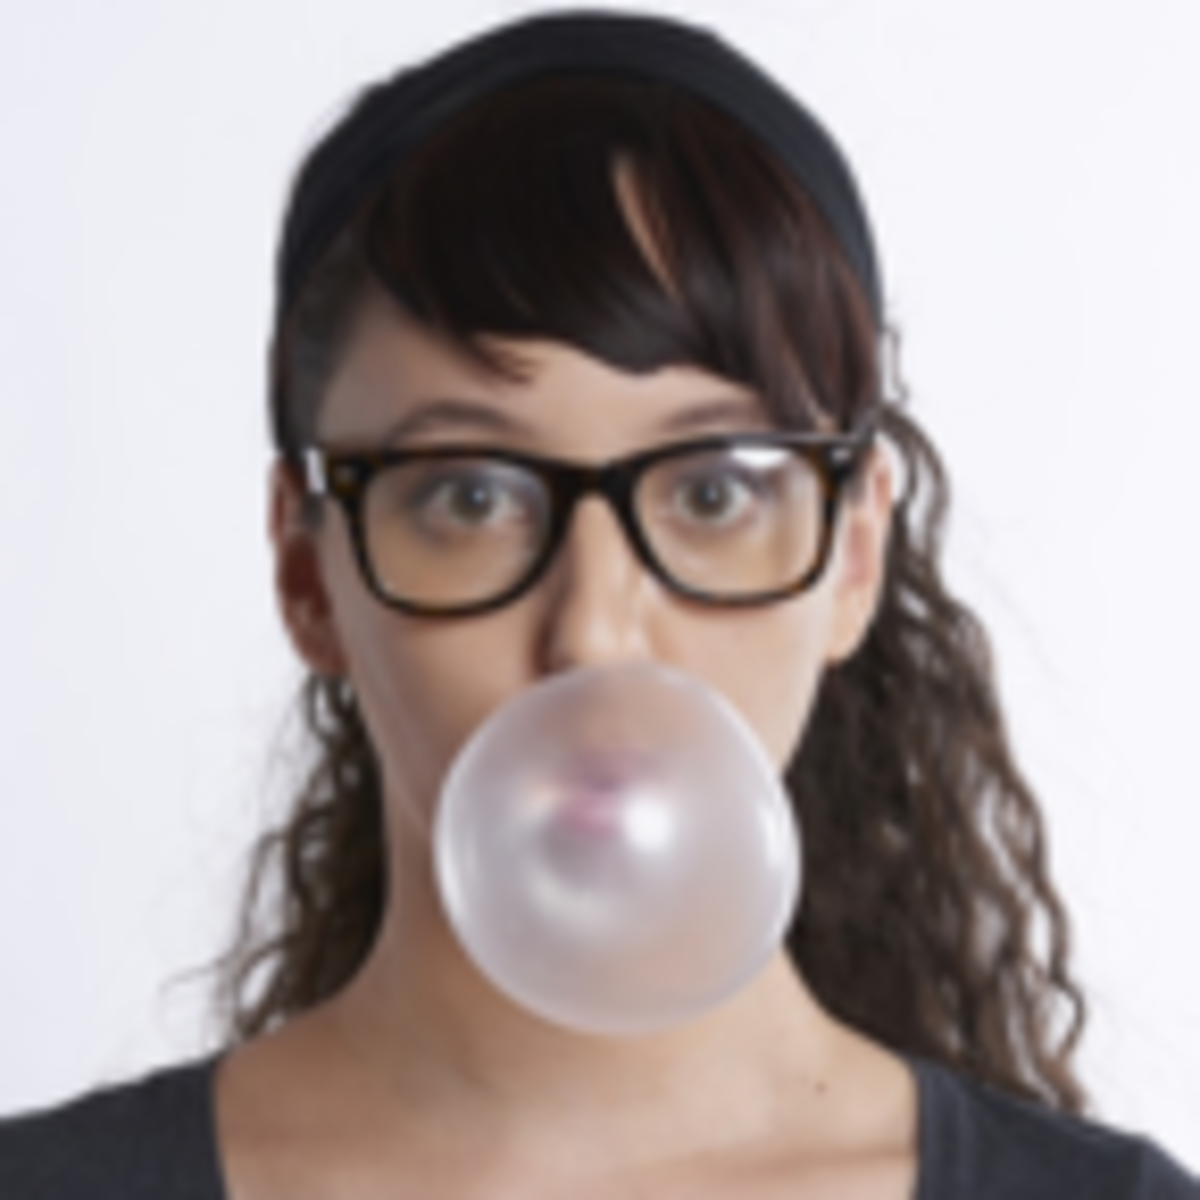 To Chew or Not to Chew Gum (When Studying)? | Psychology Today